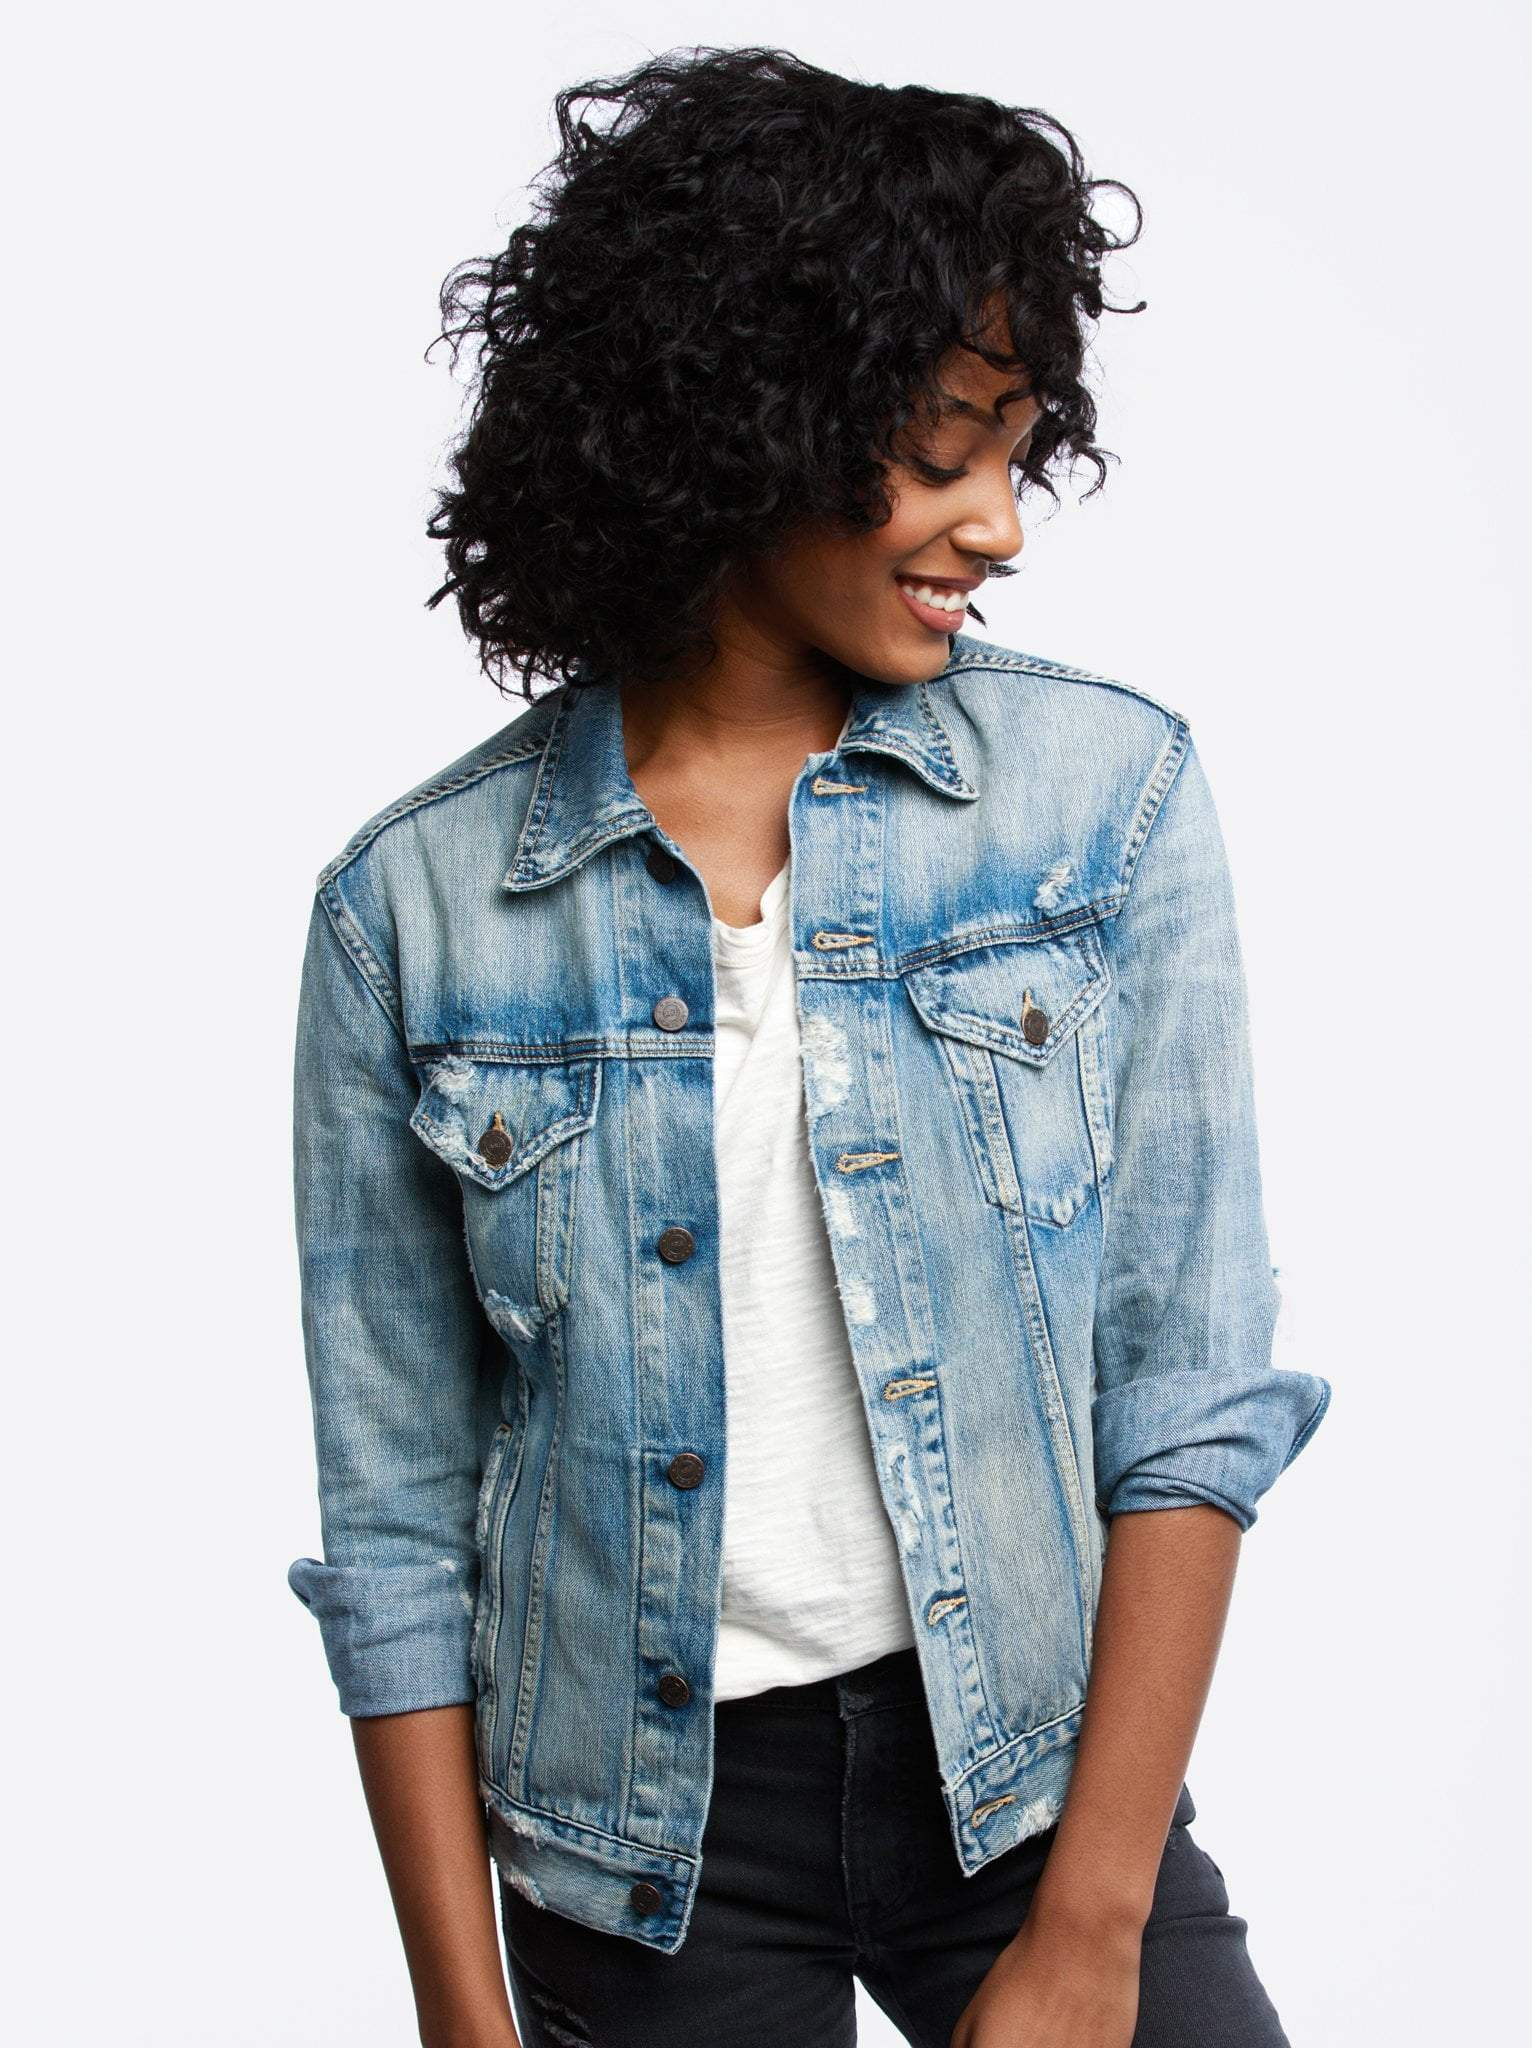 stores-like-reformation-able-marley-jean-jacket.jpg